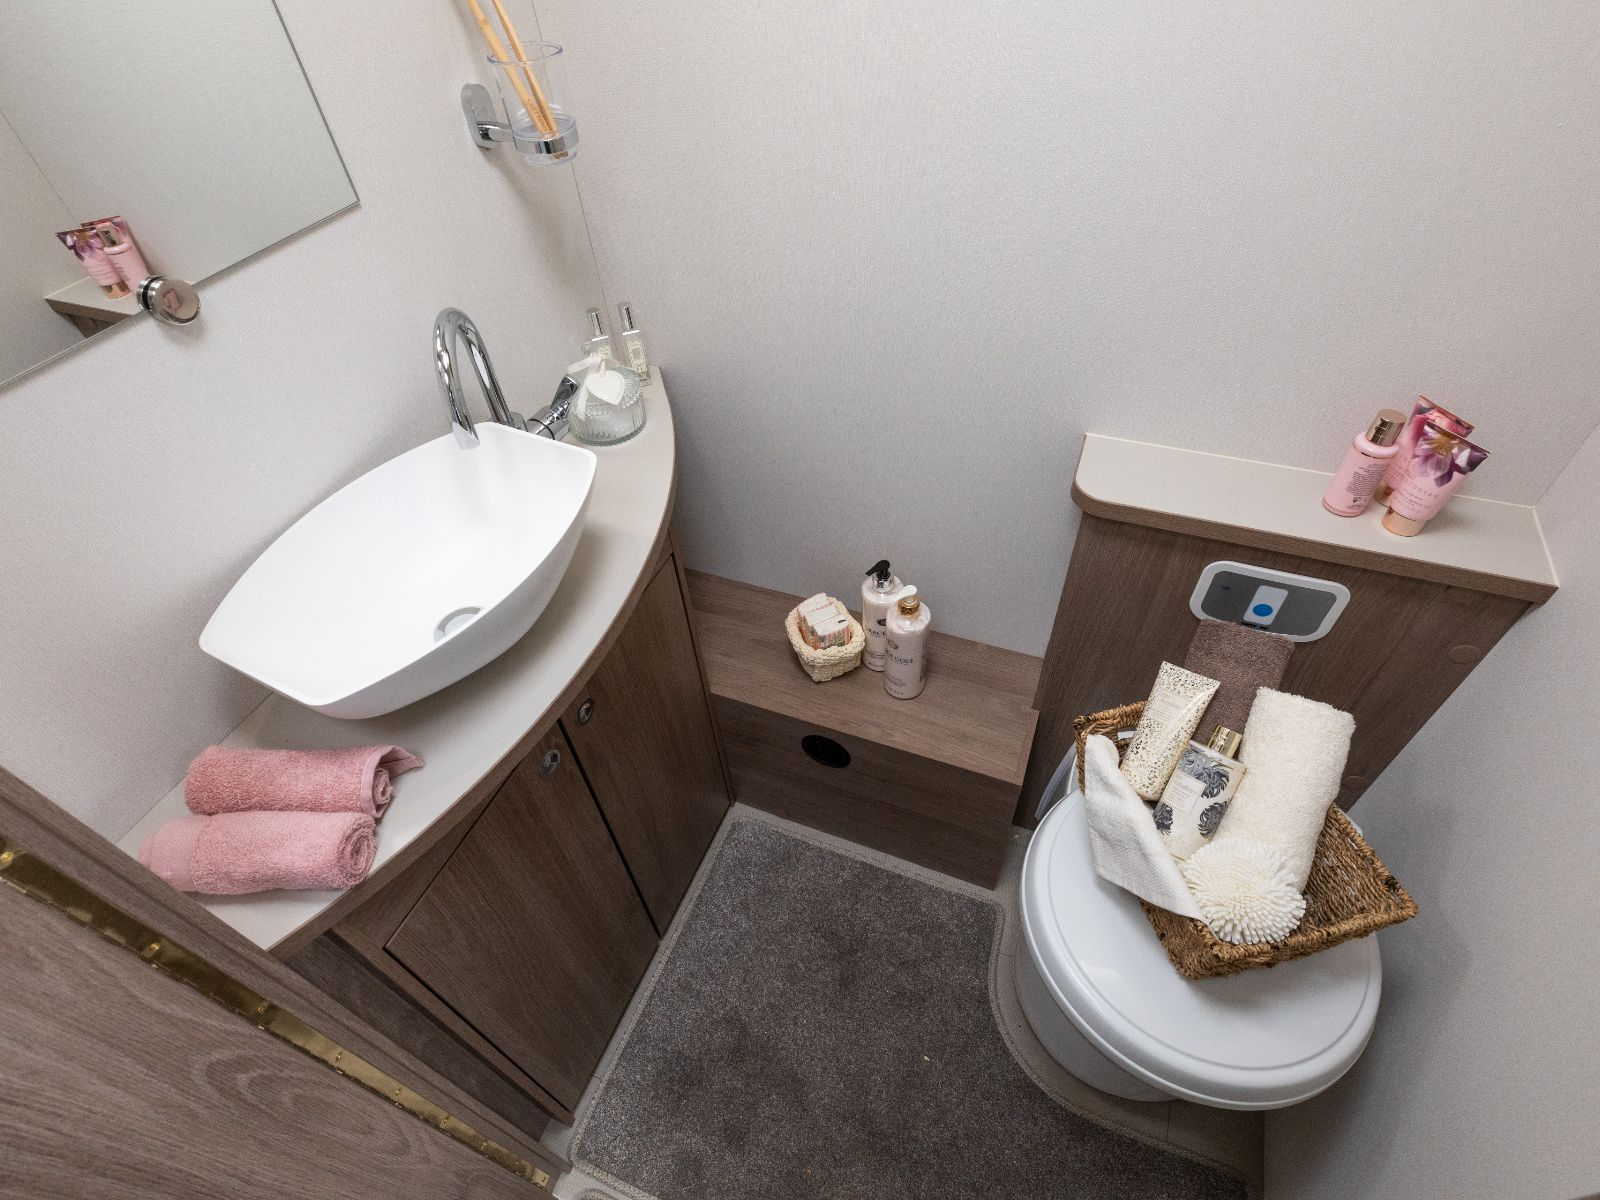 Bathroom layout with sink, mirror and toilet with assortment of toiletries on top'